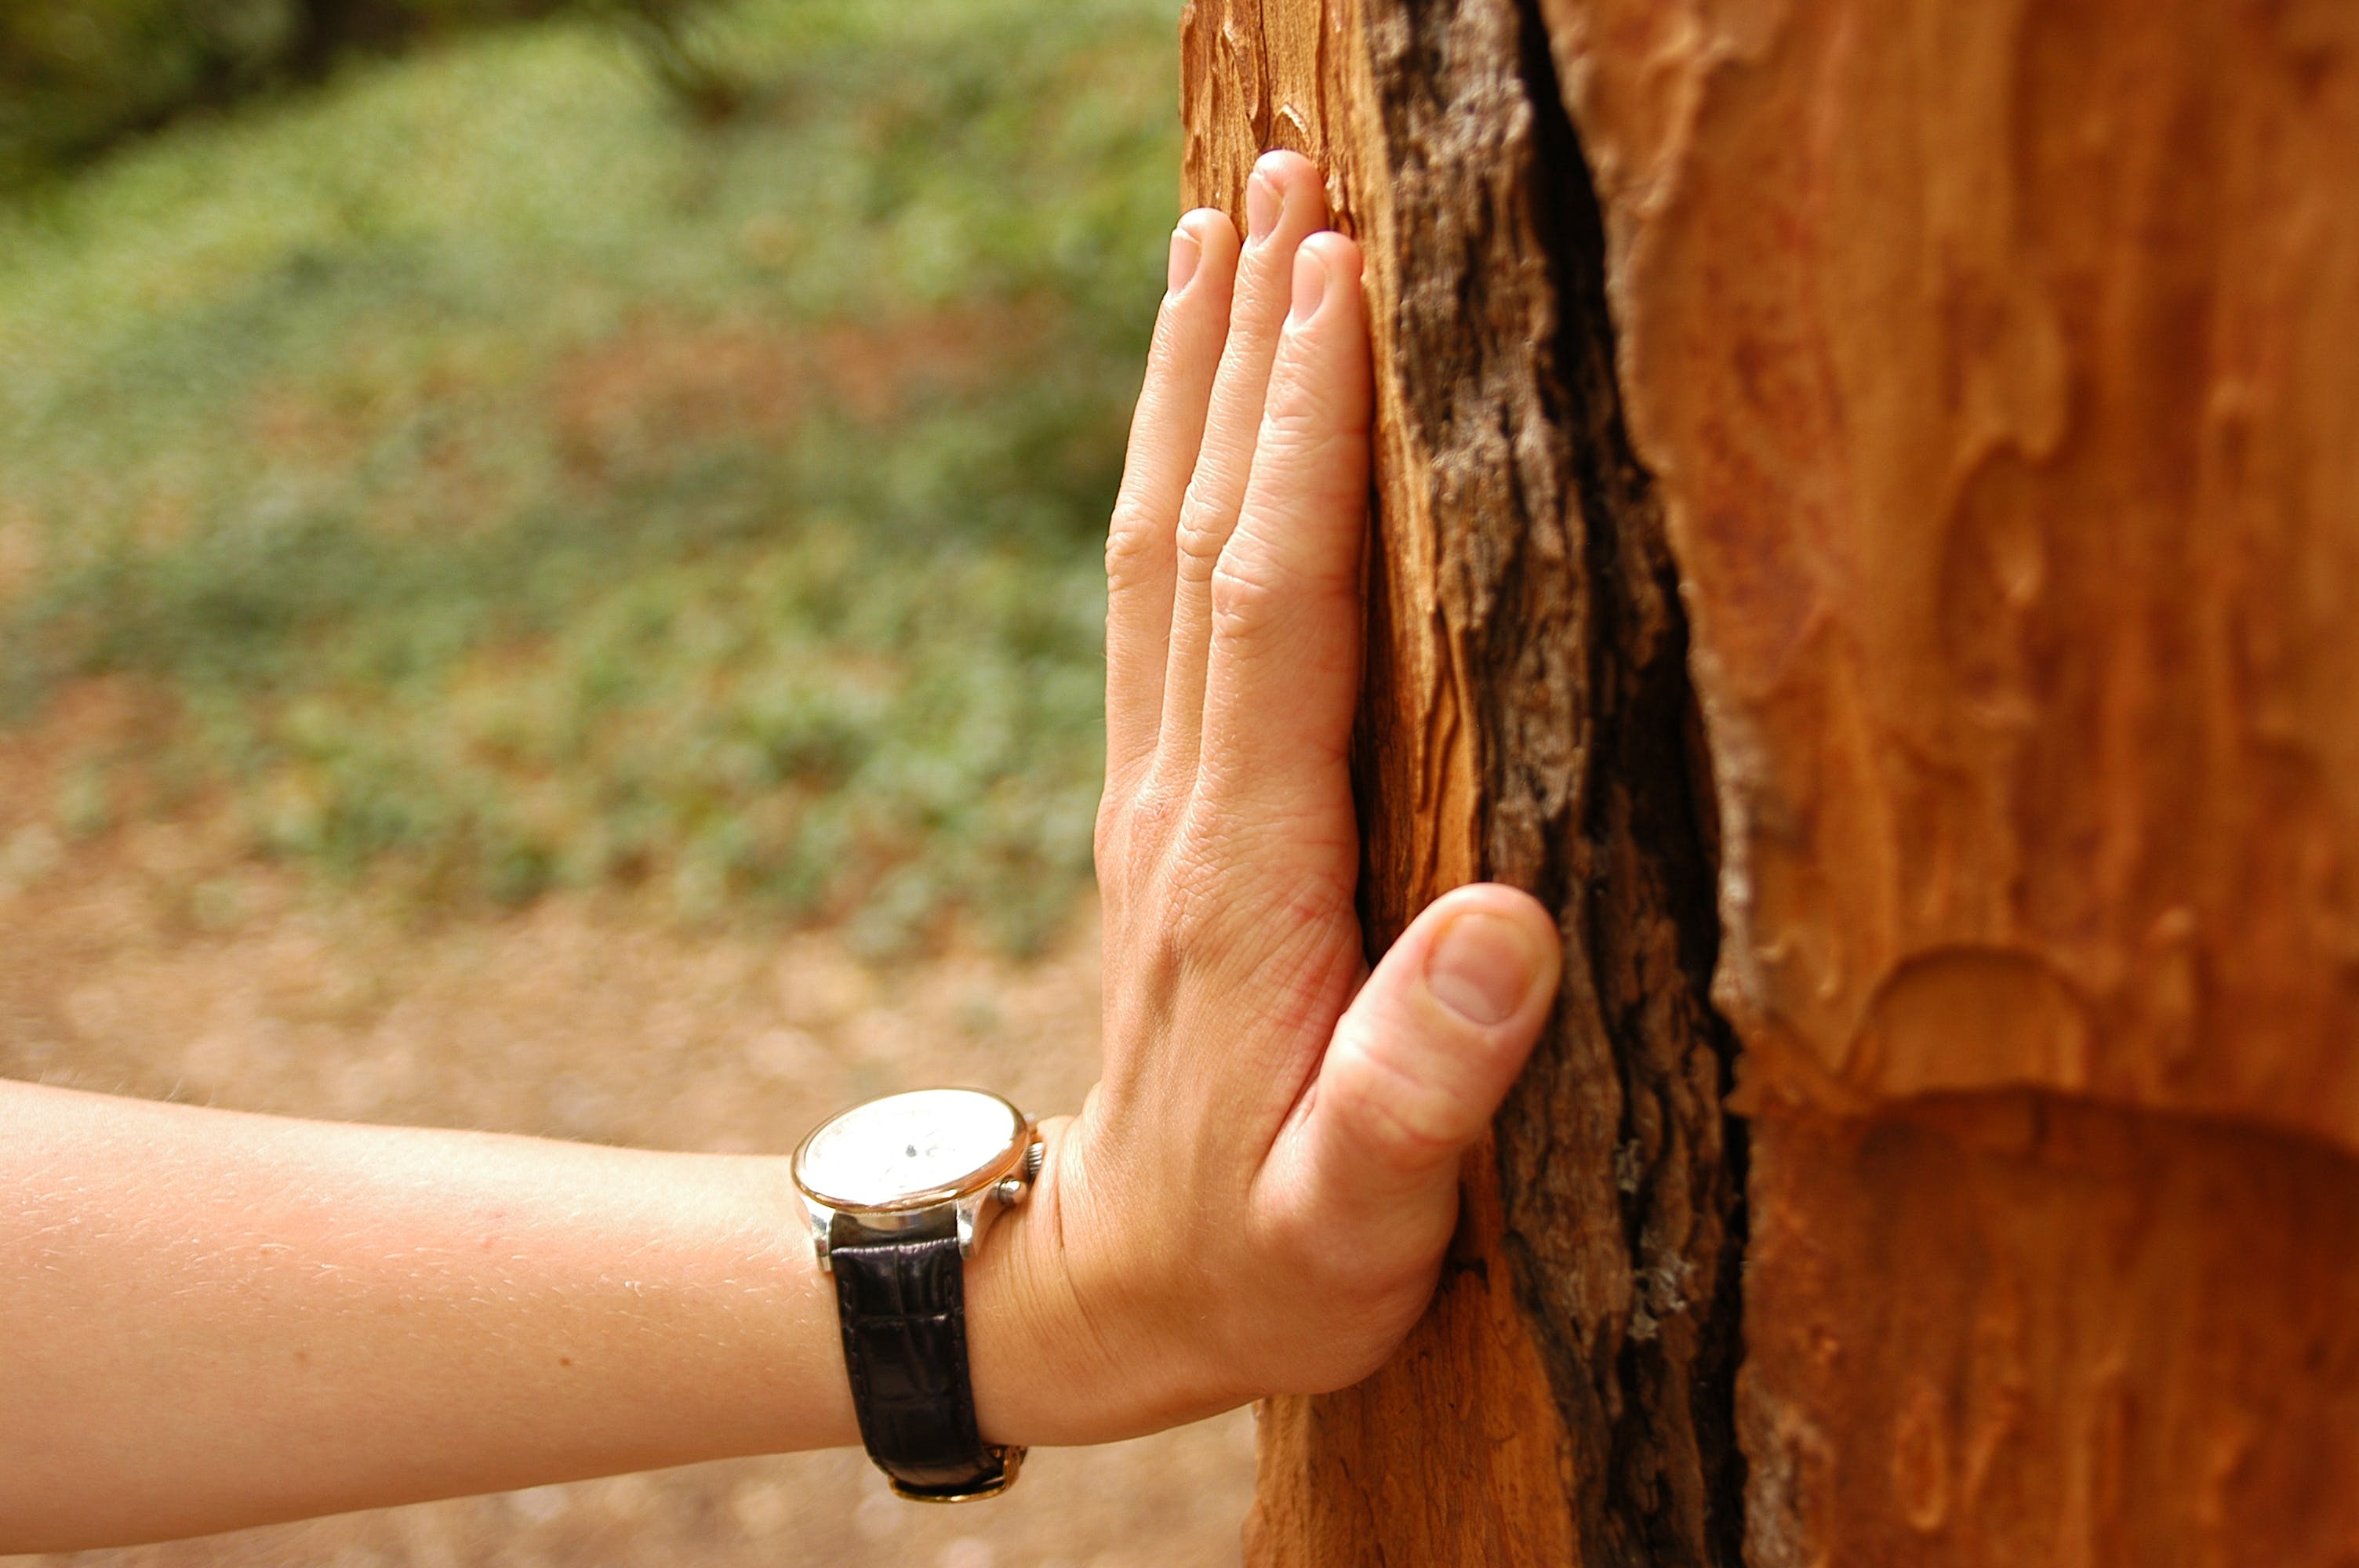 Close-up Photography of Person Wearing Watch Holding Tree